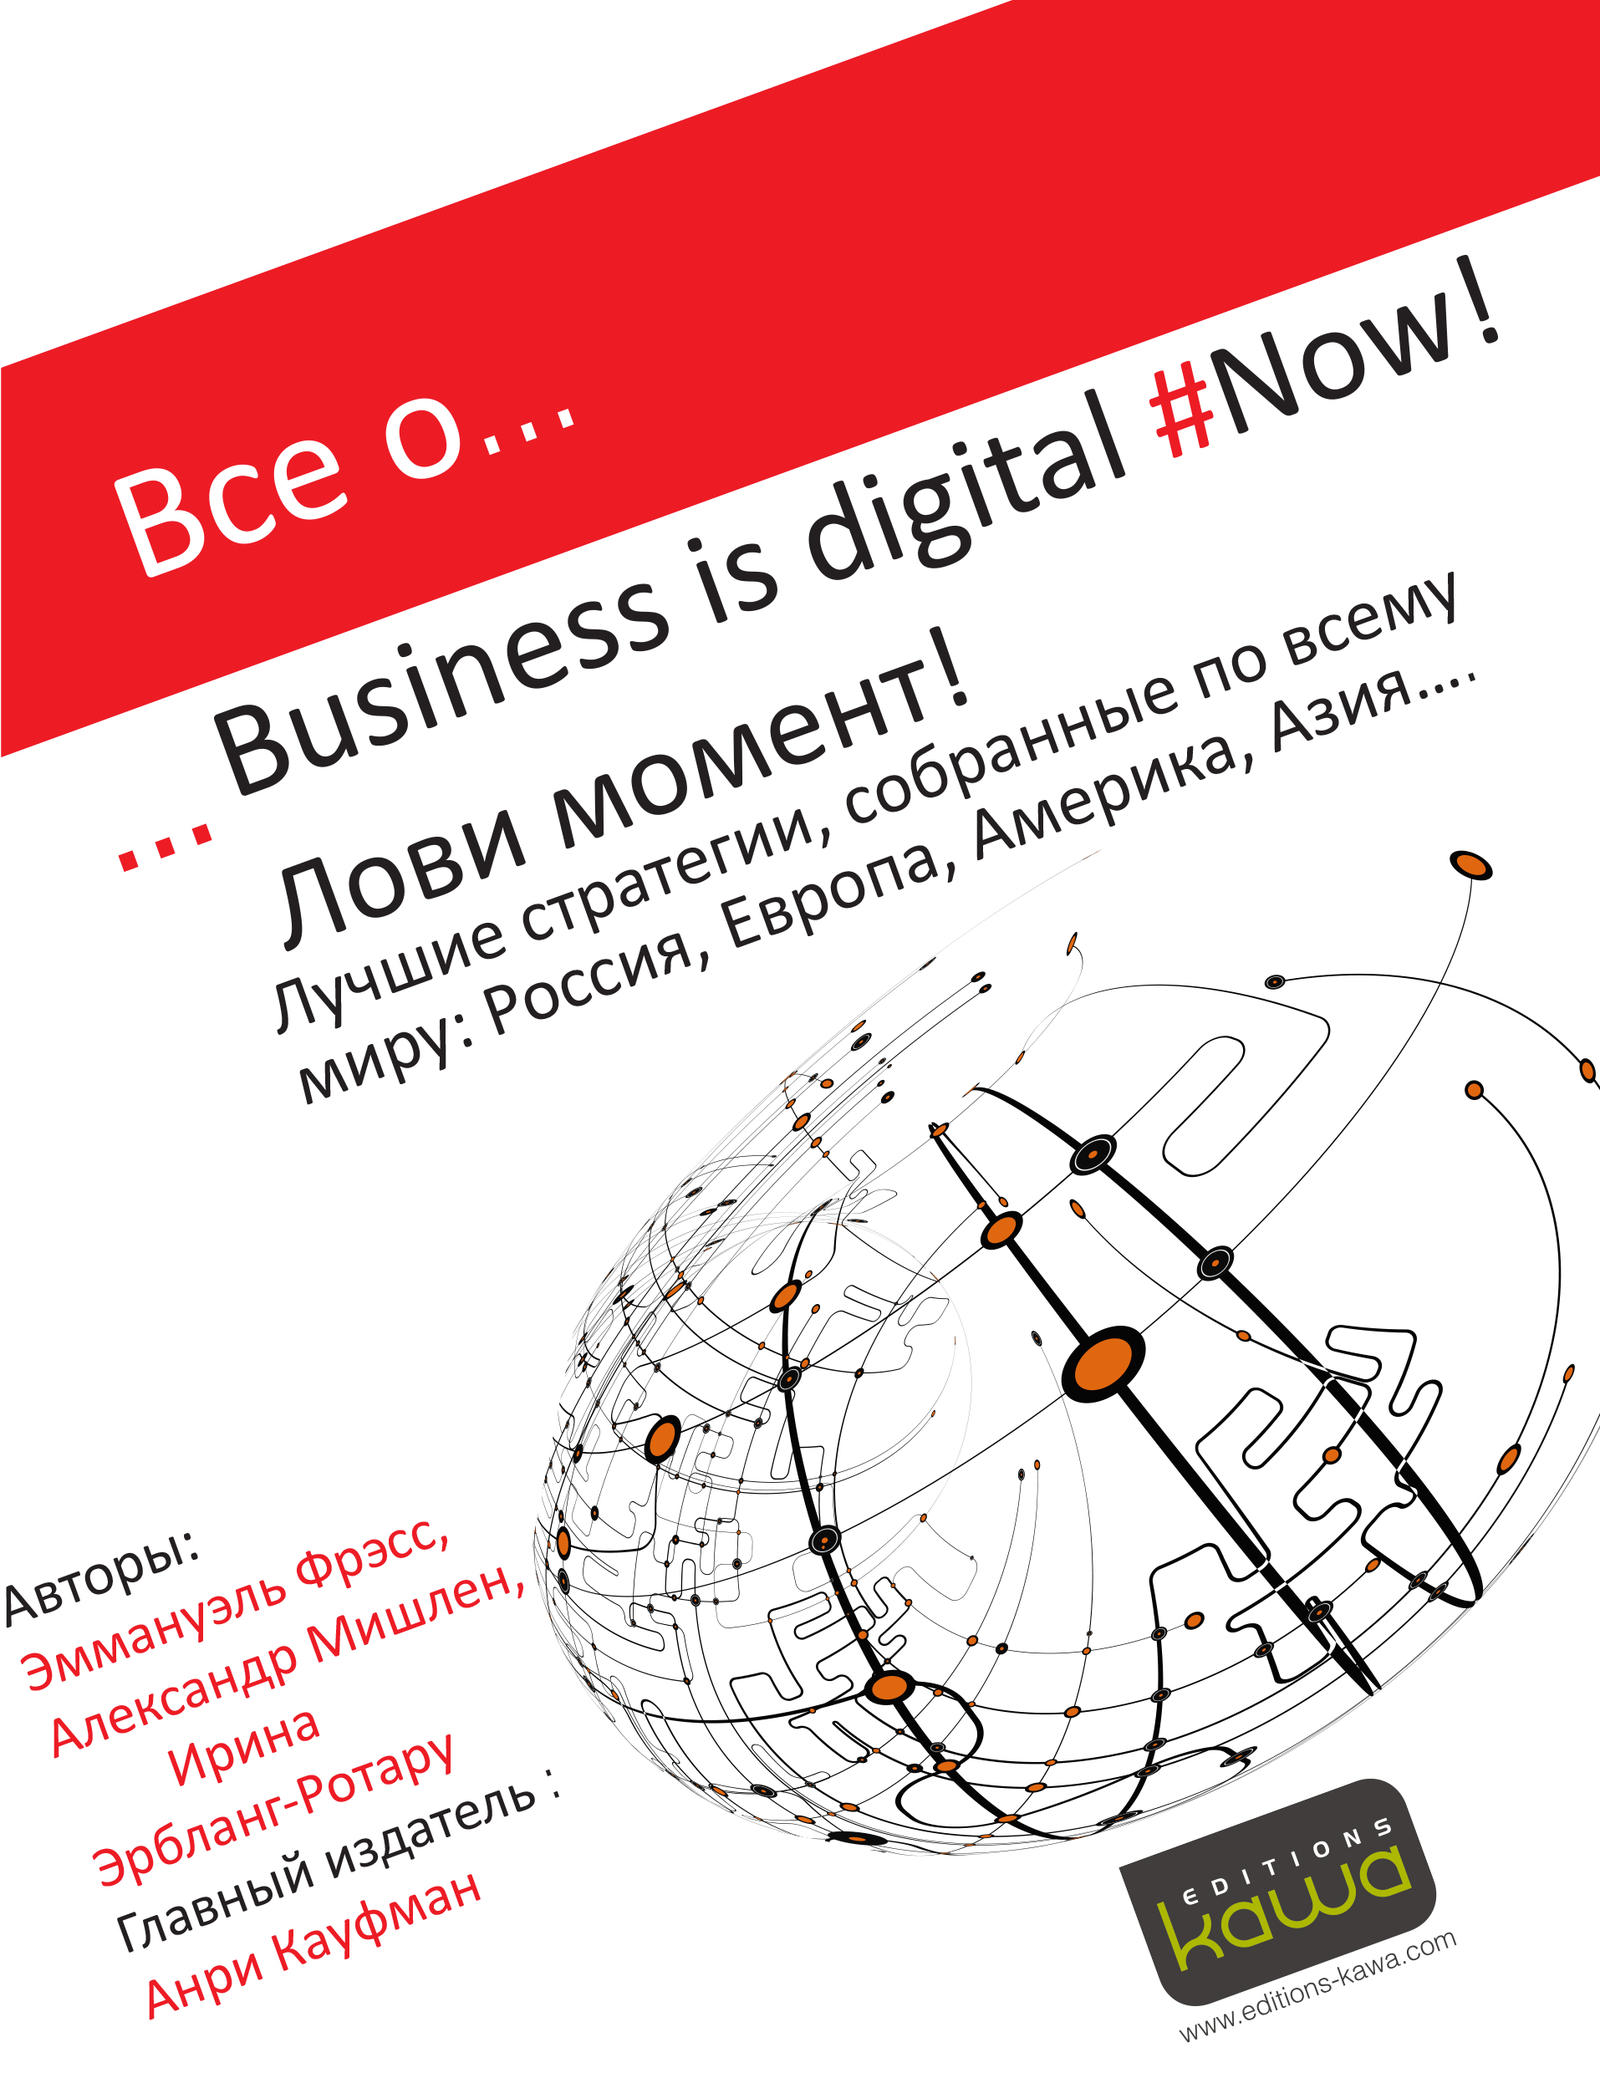 Все о... Business is digital Now!